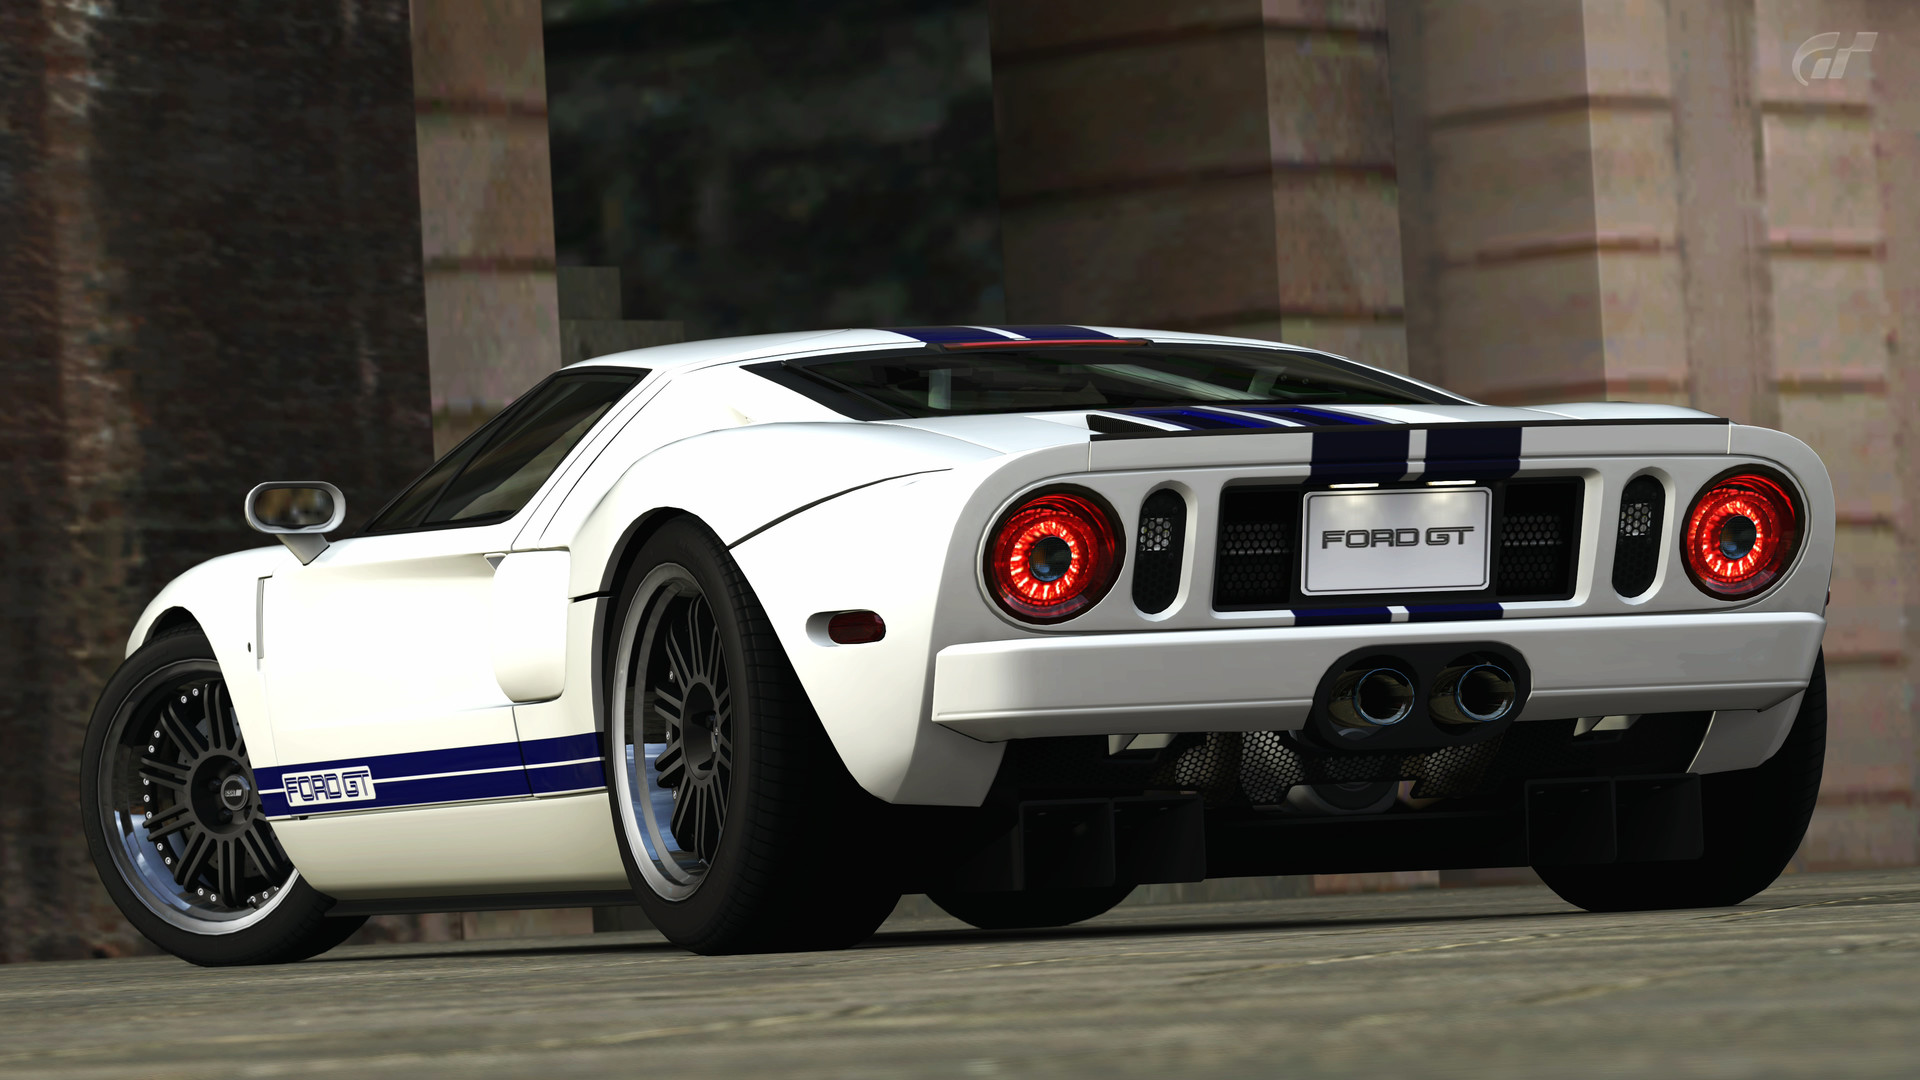 Andre camacho design ford gt 2014 wallpaper 6